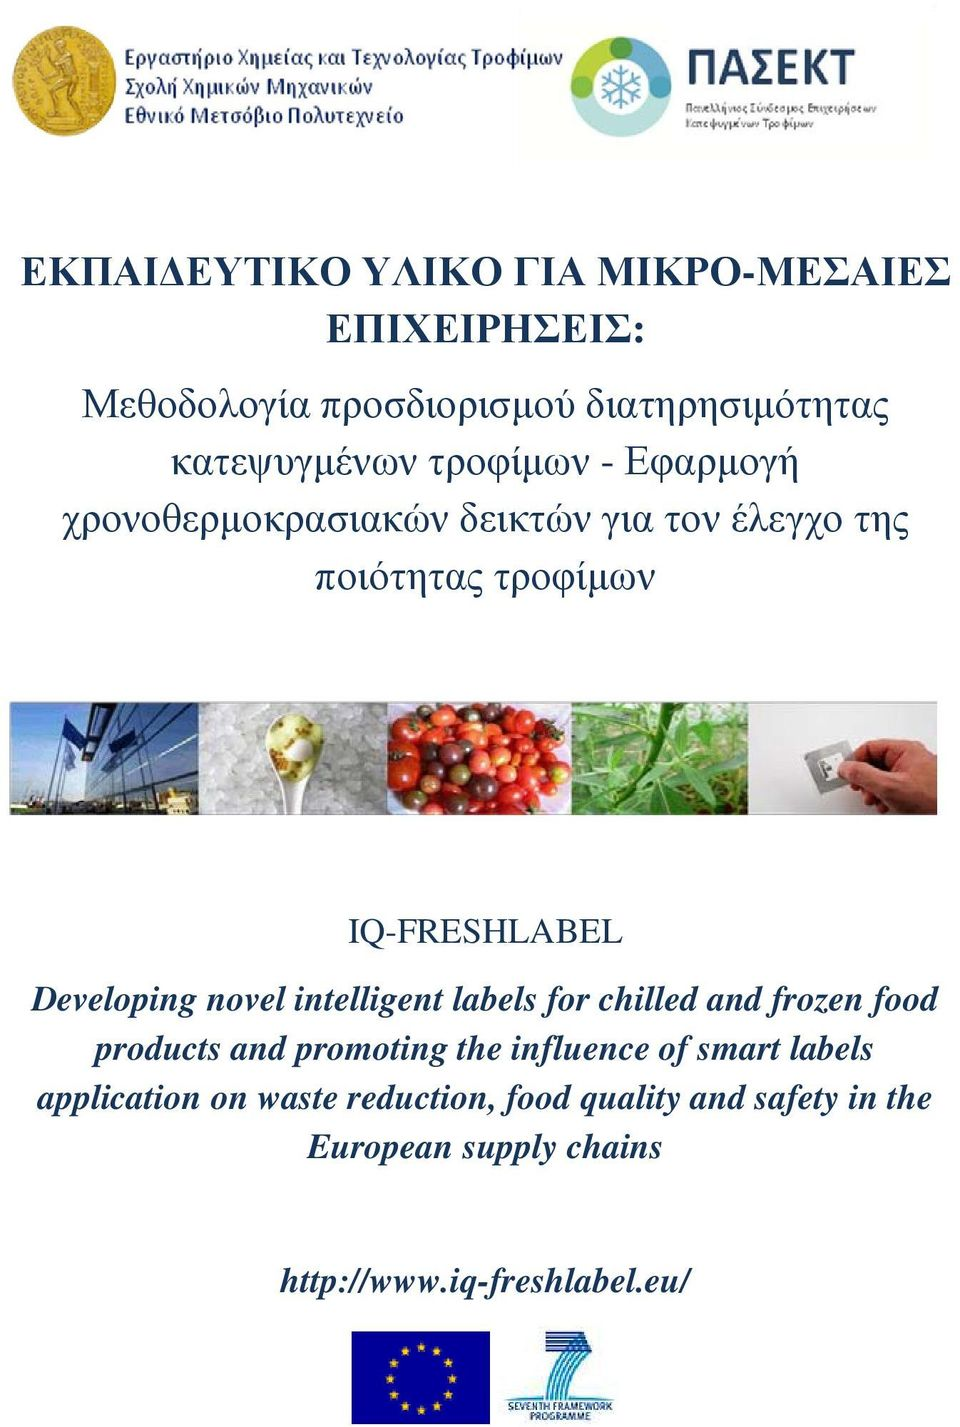 Developing novel intelligent labels for chilled and frozen food products and promoting the influence of smart